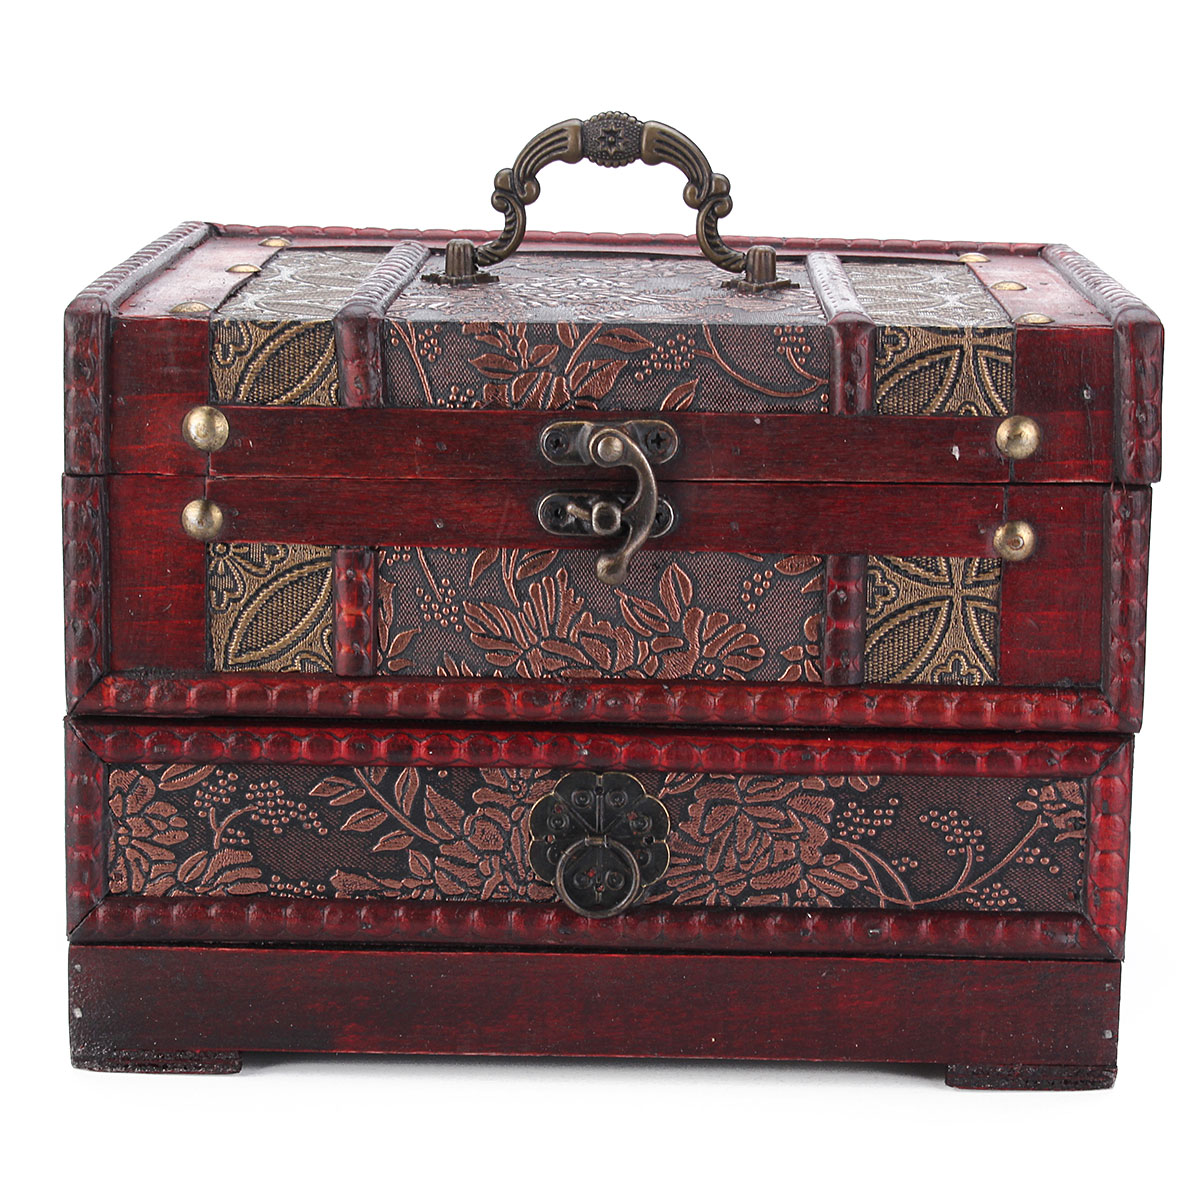 Vintage Antique Wooden Made Jewelry Box Accessories Collection Storage